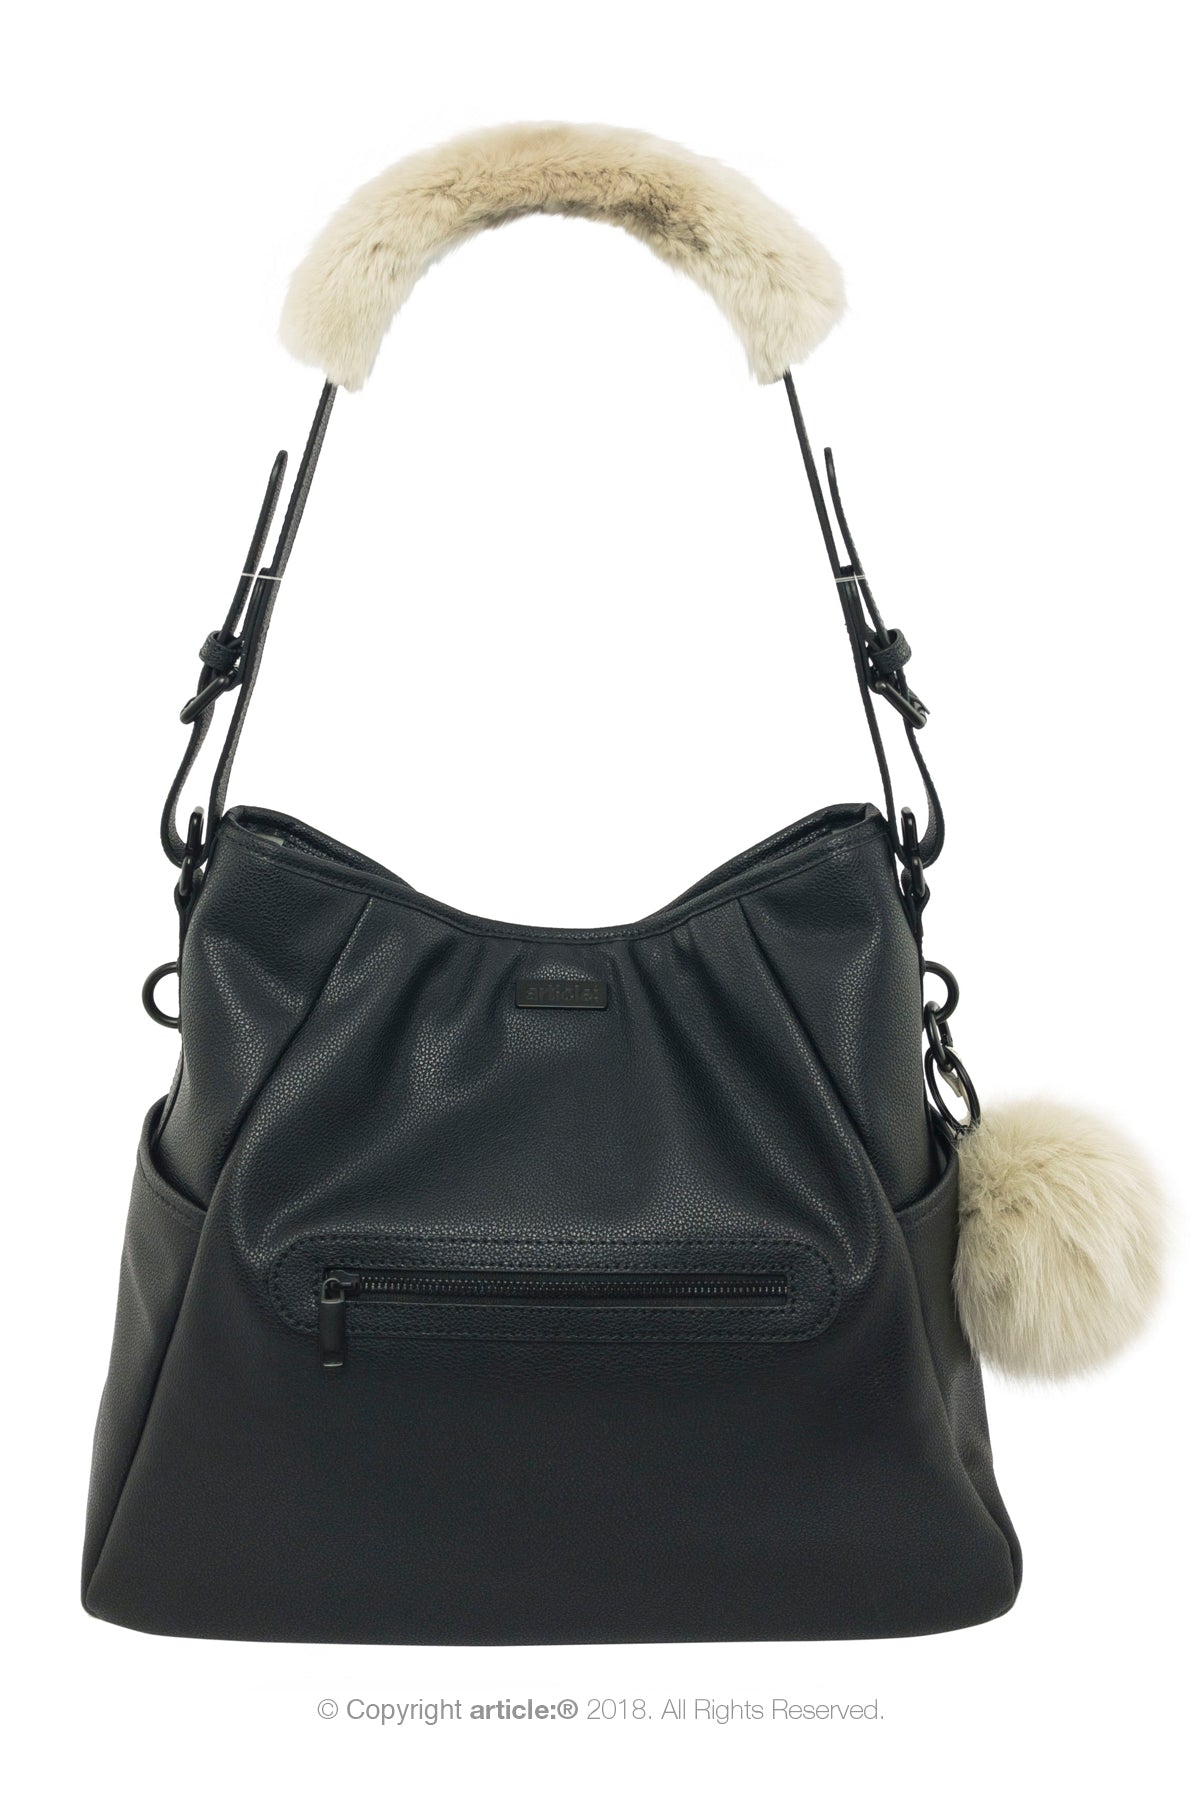 article: #130 Handbag Hobo - Noir